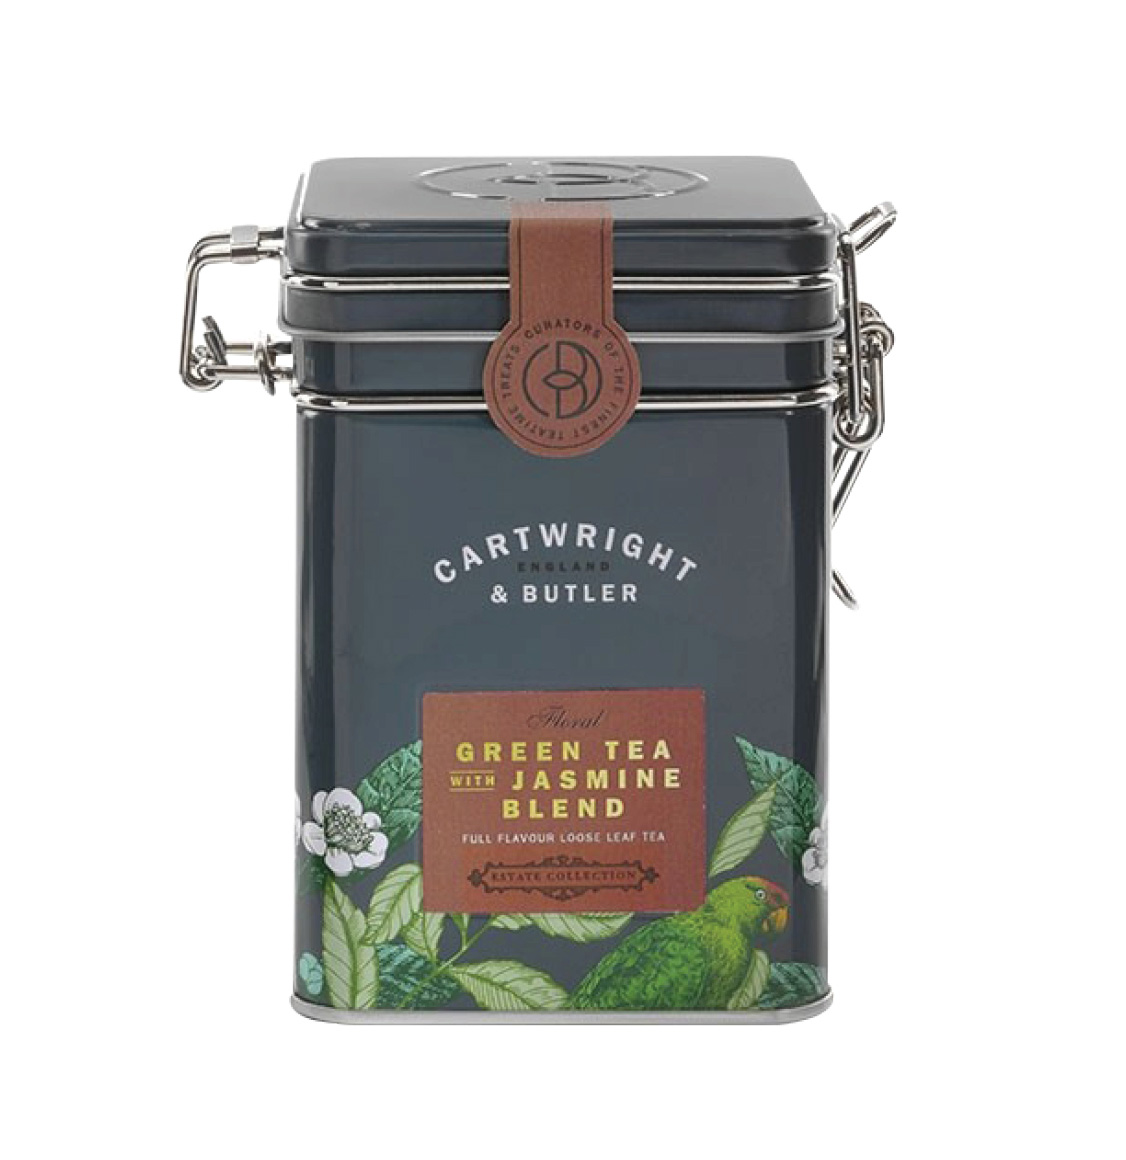 Cartwright_And_Butler_Loose_Leaf_Tea_Tin_Green_Tea_And_Jasmine_The_Project_Garments_A